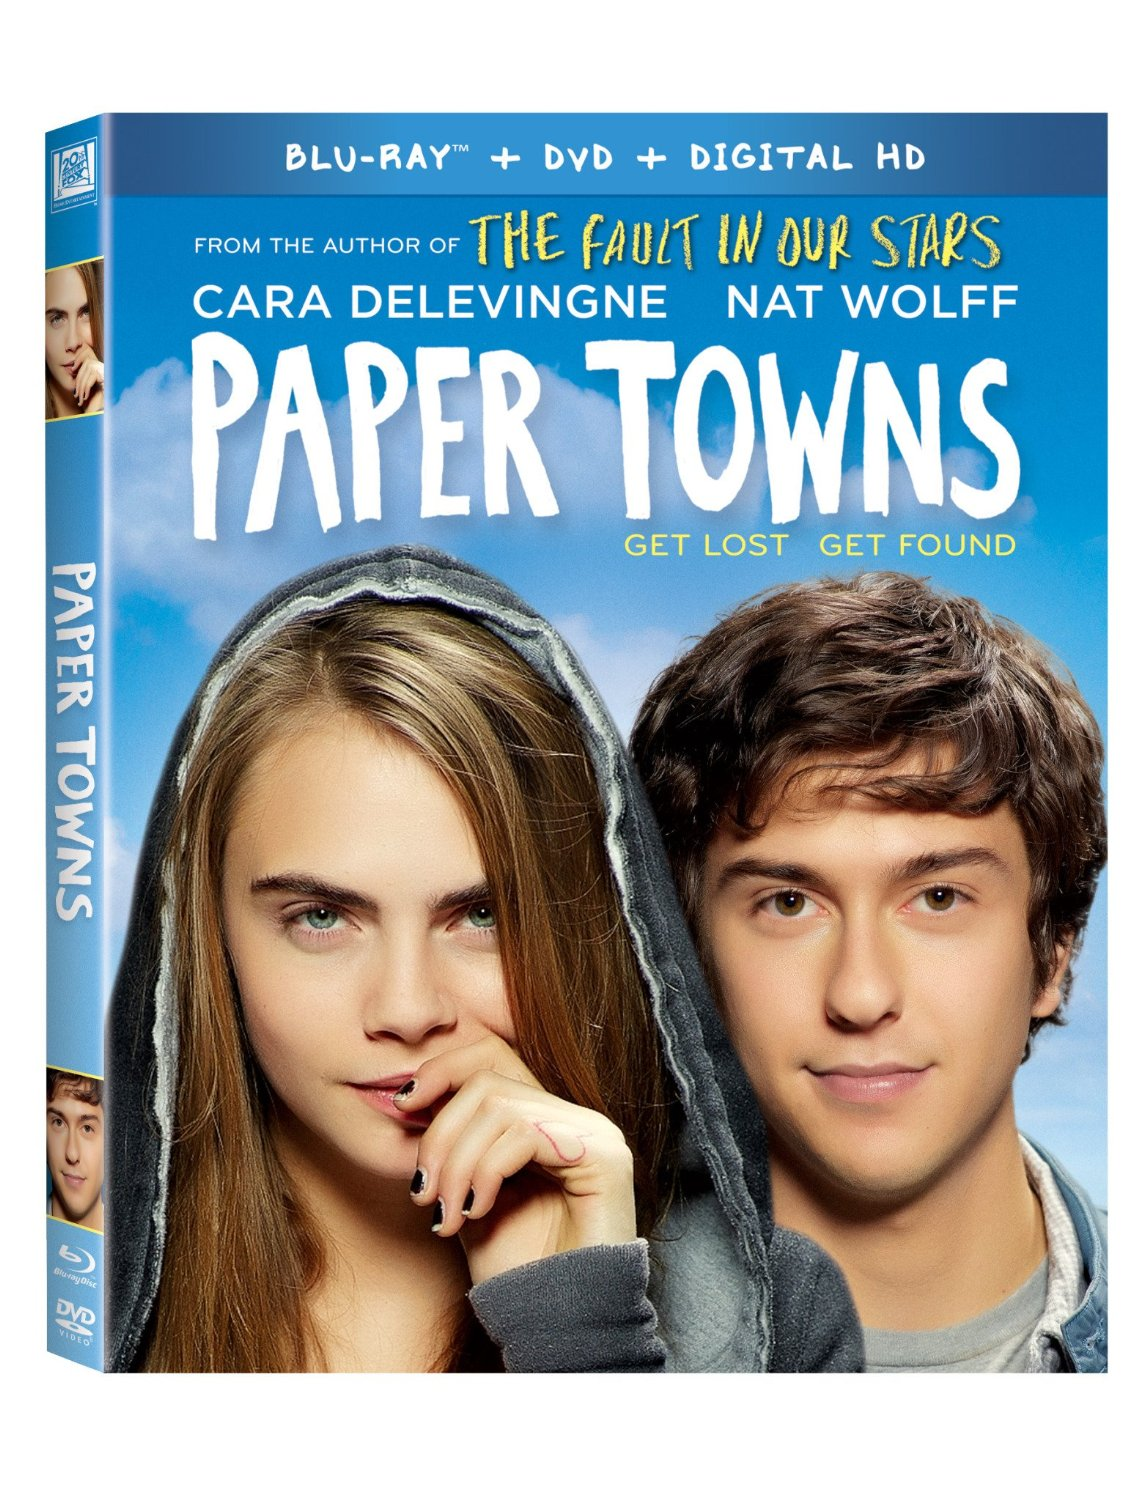 paper towns review and giveaway